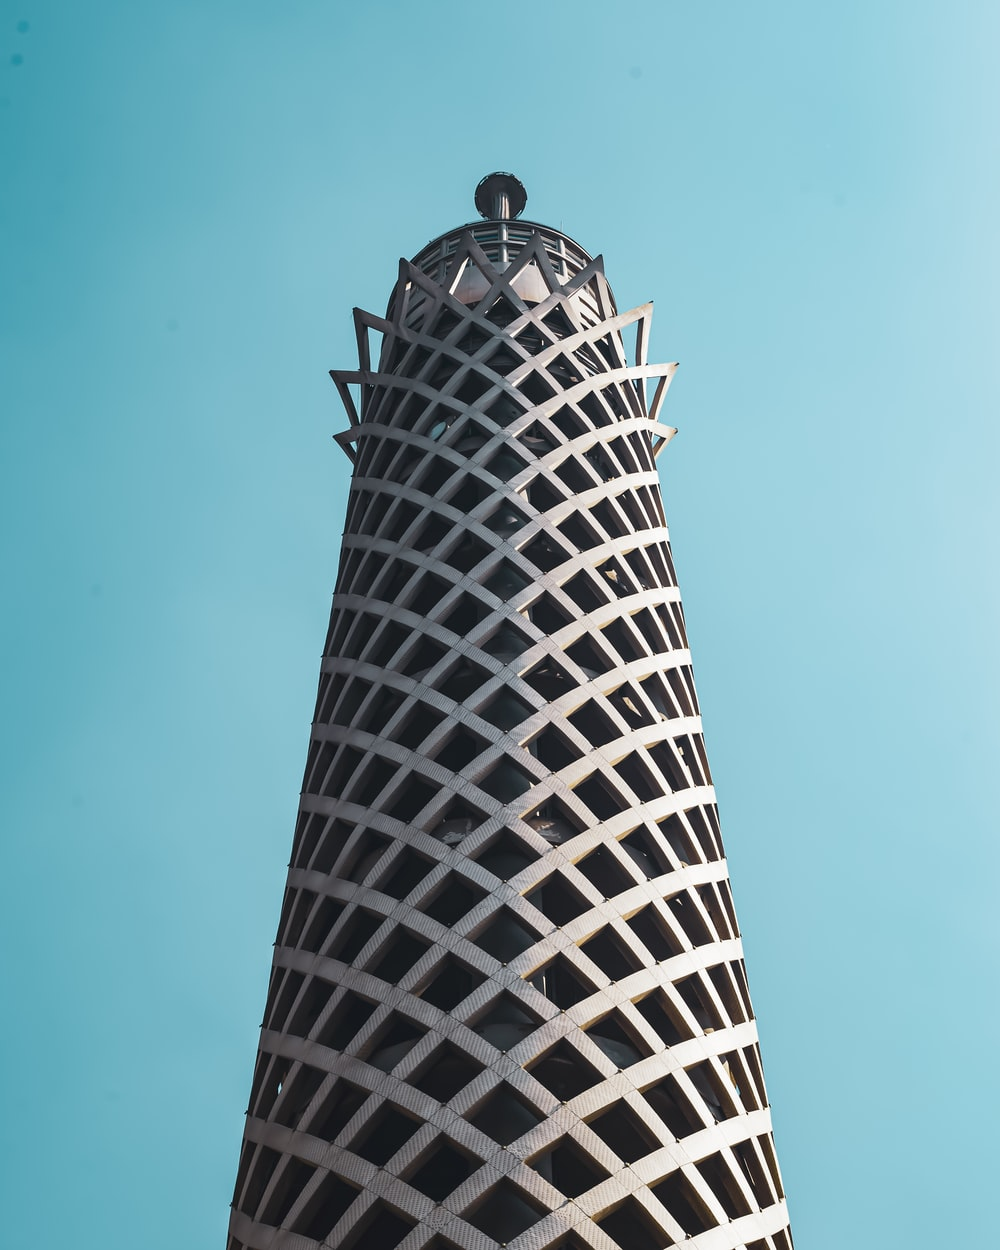 black and white tower under blue sky